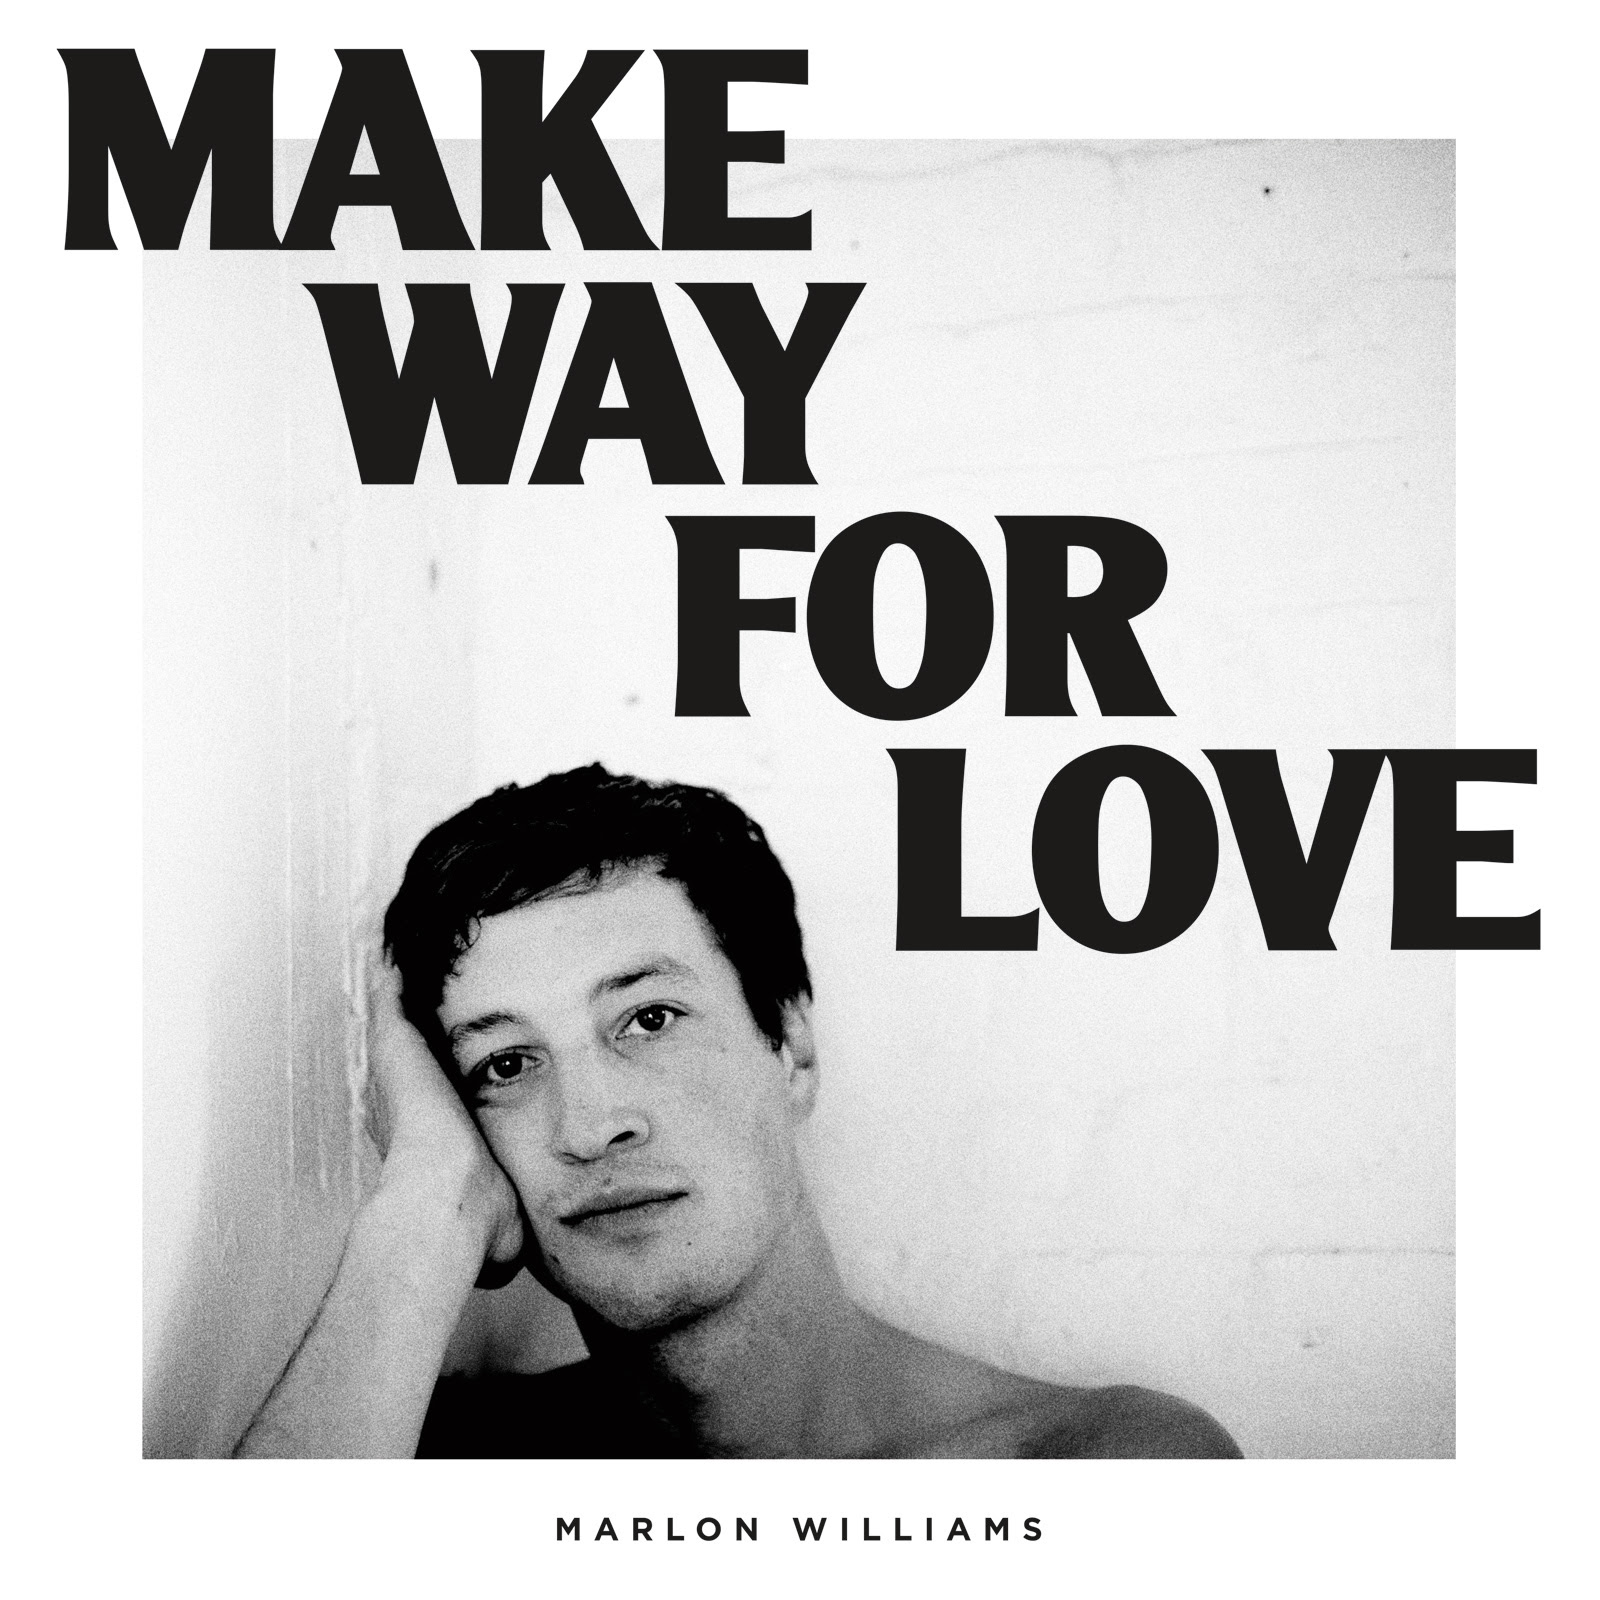 Make Way For Love tracklist:  1. Come To Me 2. What's Chasing You 3. Beautiful Dress 4. Party Boy 5. Can I Call You 6. Love Is A Terrible Thing 7. I Know A Jeweller 8. I Didn't Make A Plan 9. The Fire Of Love 10. Nobody Gets What They Want Anymore 11. Make Way For Love